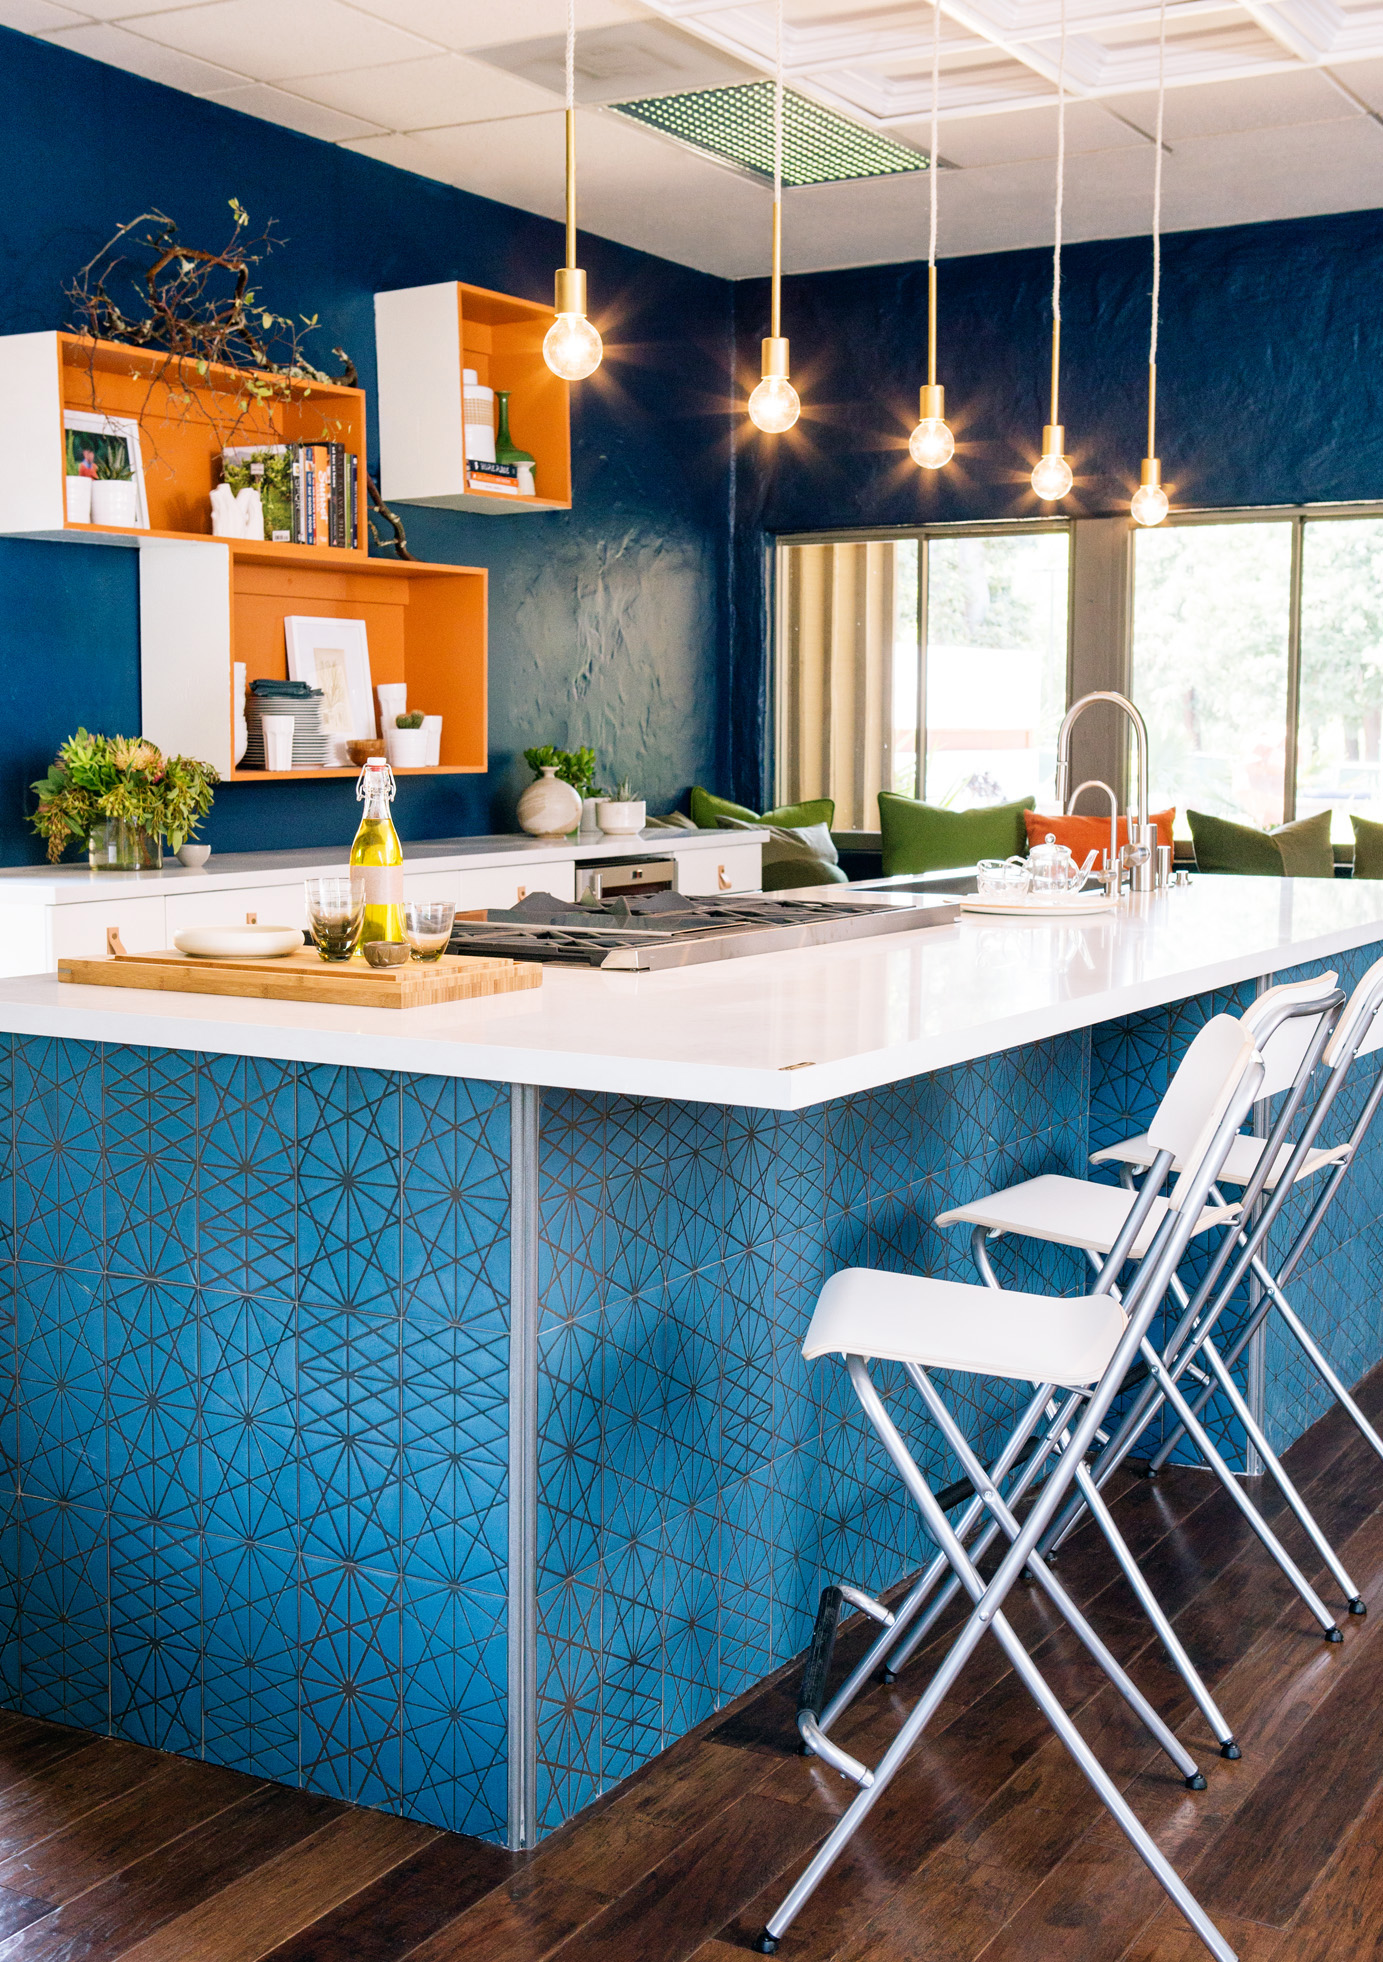 10 Hardest-Working Kitchen Islands